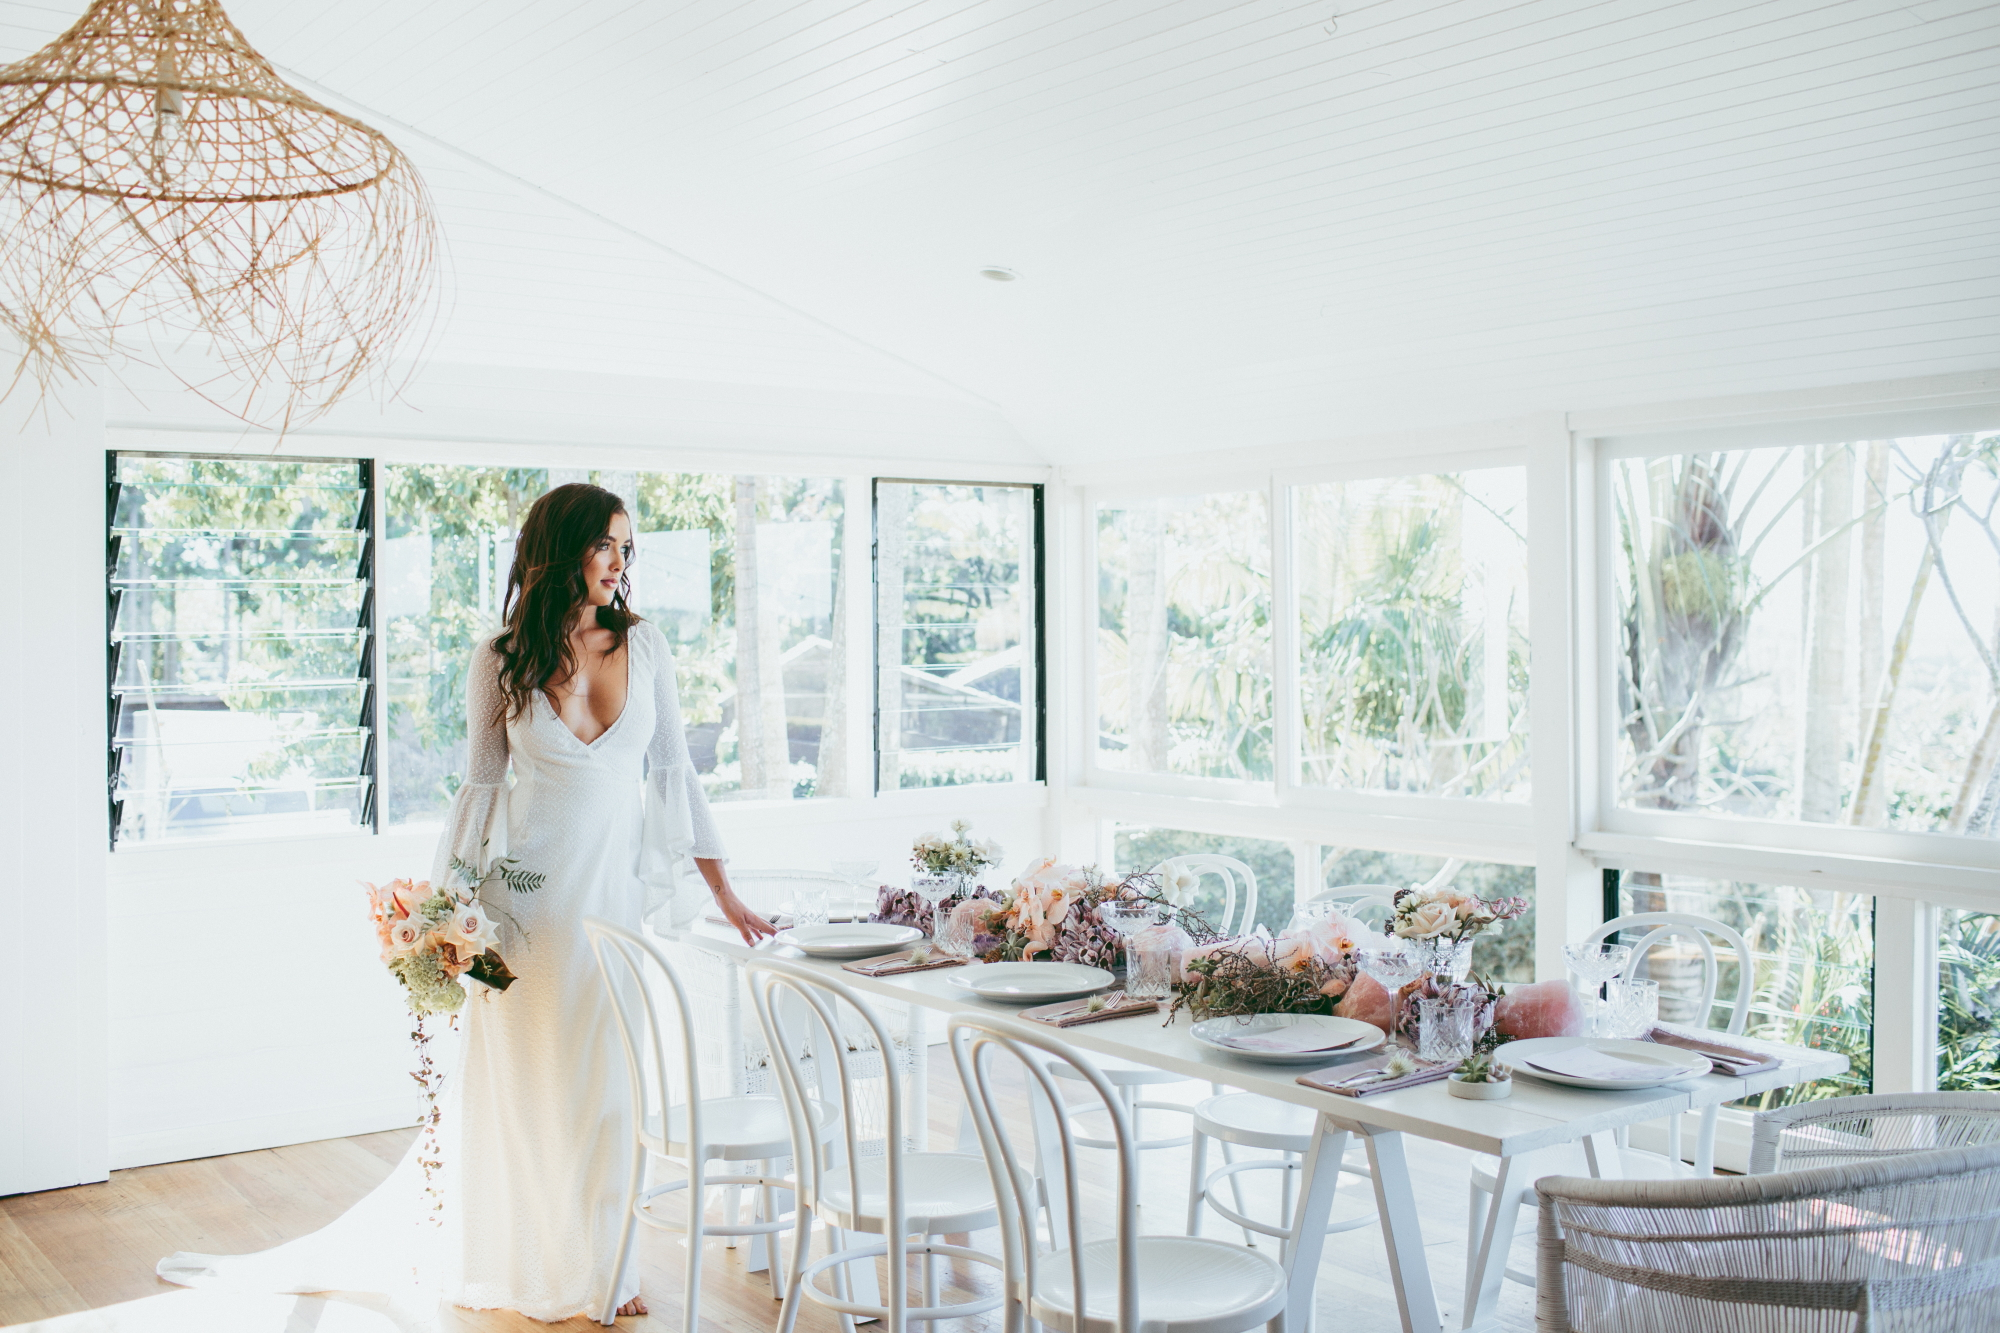 Byron Bay has its own special kind of soulful beauty and our recent styled shoot 'Coastal Romance' captures the iconic ocean, earth and romantic vibes that having your wedding in this region has to offer.  As we shift into the warmer months, this tablescape full of subtle pink and purple pastel hues and green succulents set the tone for a romantic summer soiree. The soft, delicate floral details with glimmering rose quartz (the 'crystal of love') and amethyst crystals encompass a dreamy, luminous atmosphere. The unique barnacle clusters and crystal elements tie together the ocean and earth creating an effortless, luxurious feel to your tablescape.  The lush, green rolling hills that surround Byron Bay make for the perfect setting to use white decor and distinctive, colourful textures. We have expanded our range to include plenty of neutral furniture options that can really help transform a venue space and make it a breeze for styling. We're also excited to offer these gorgeous barnacle clusters and crystals for hire. It's these individual details and textures that really provide that extra wow factor to your wedding day.  Scroll down for inspiration.